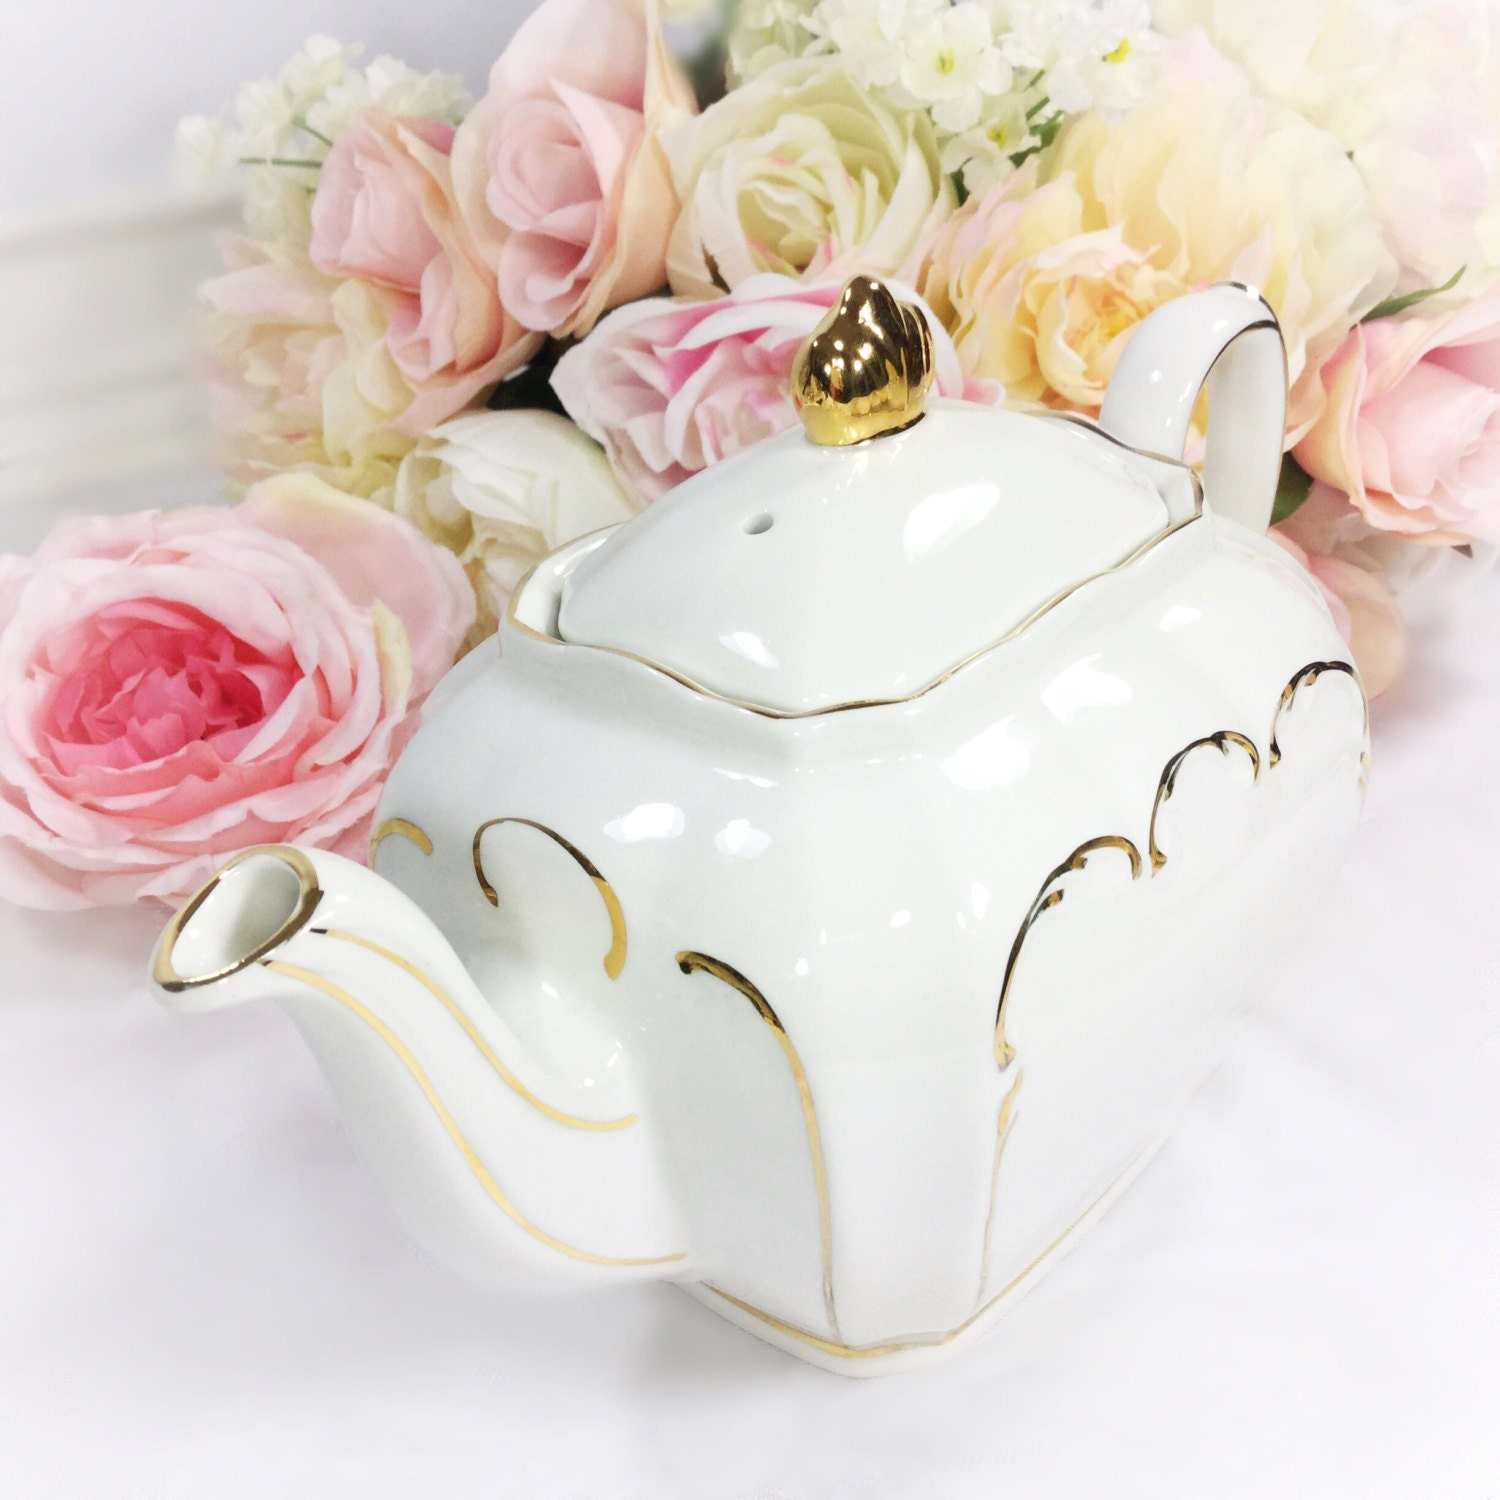 Cubed Sadler English Teapot, Cubed Windsor Teapot, White and Gold ...